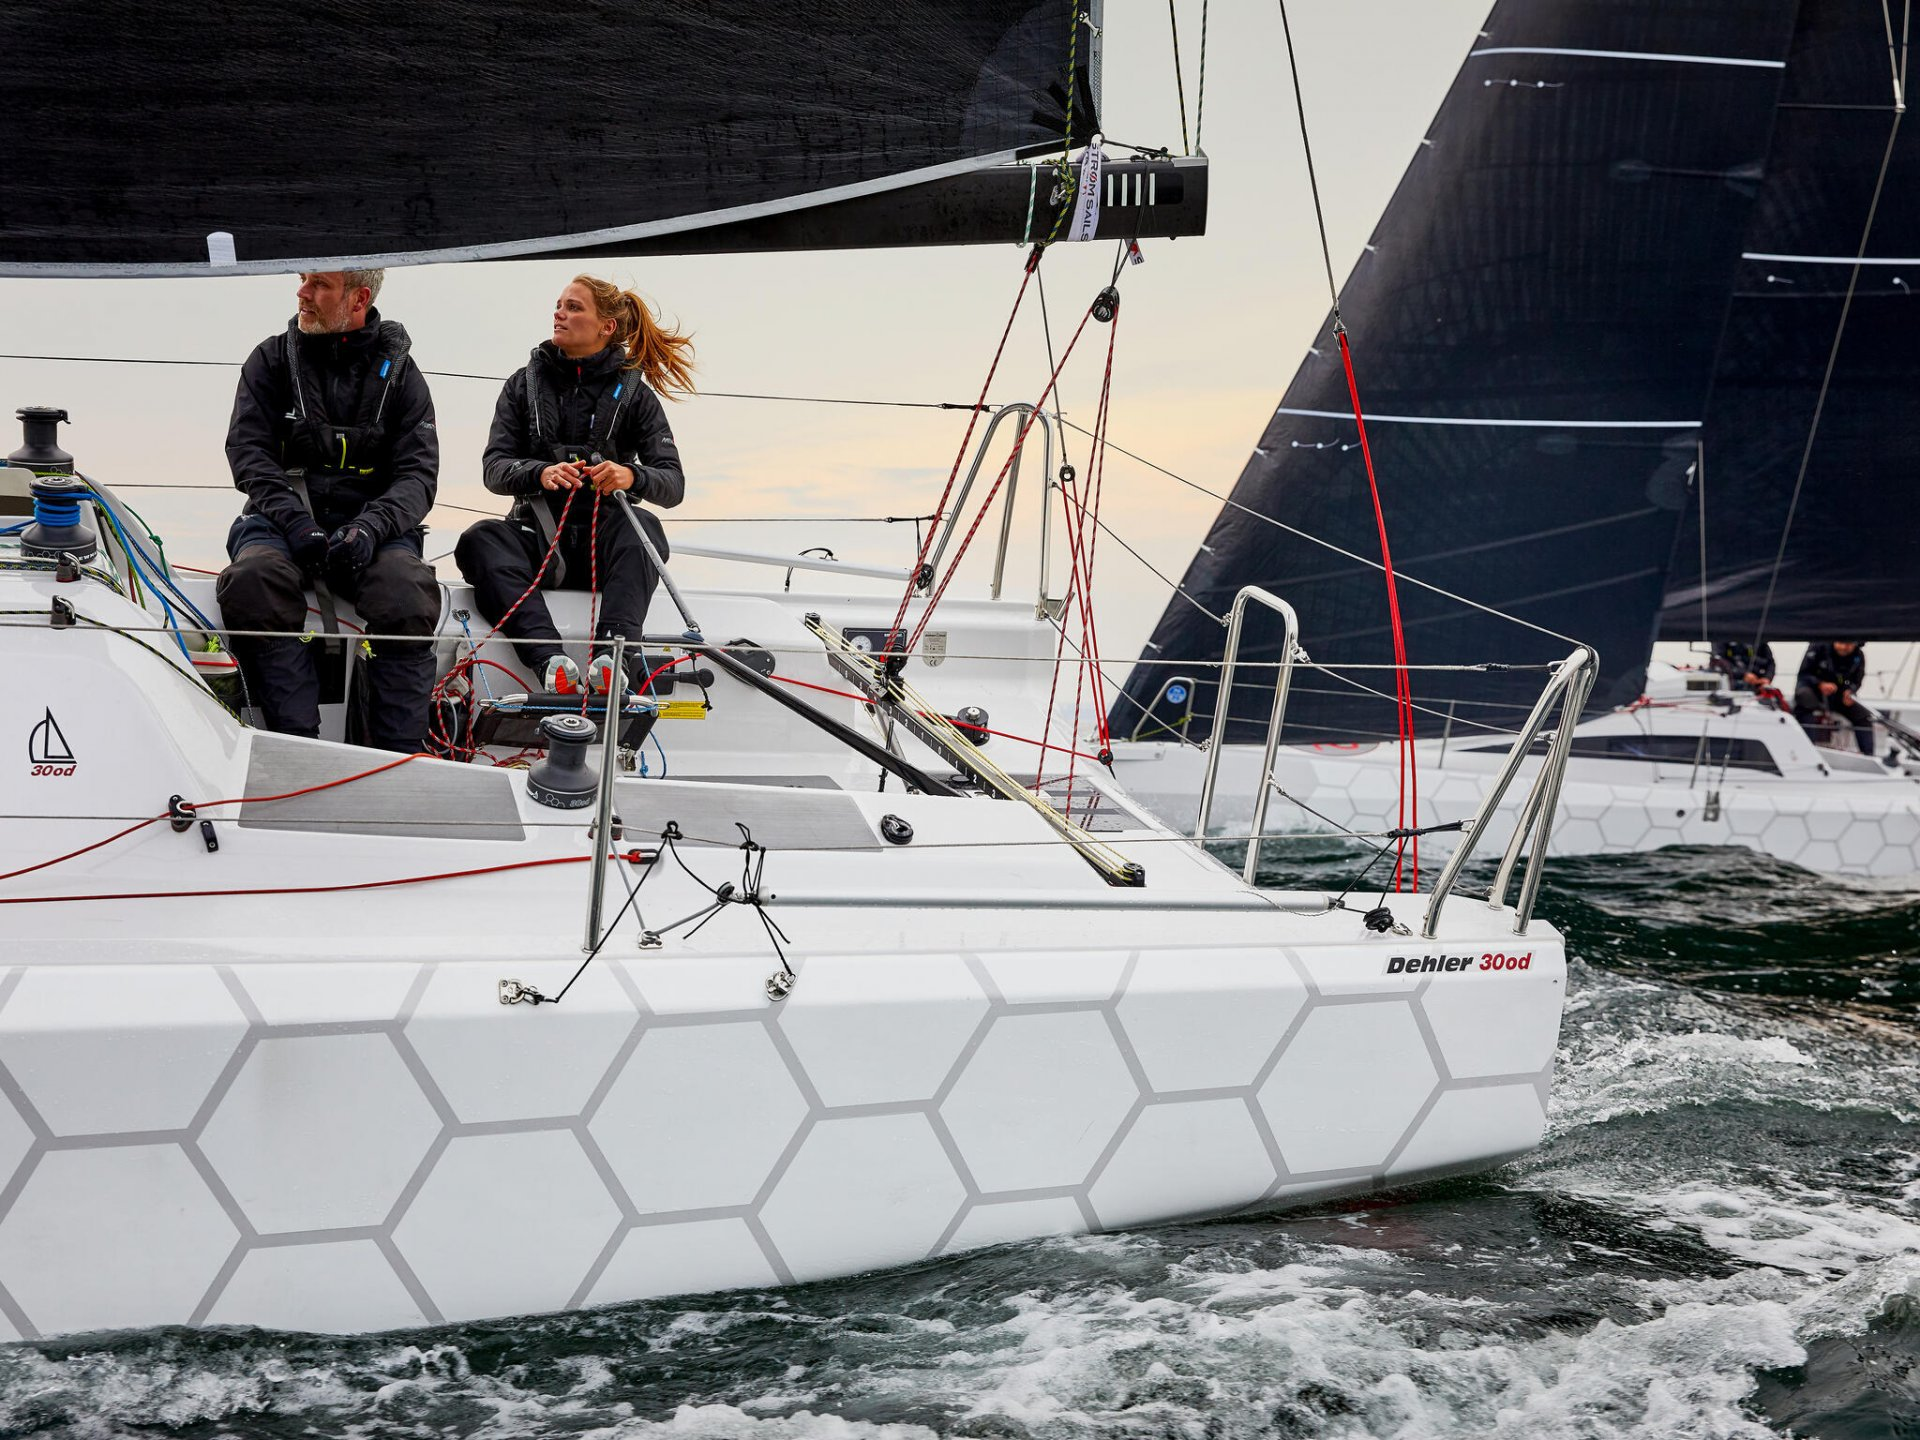 DEHLER 30 ONE DESIGN offshore youth development mixed offshore Olympia 2024